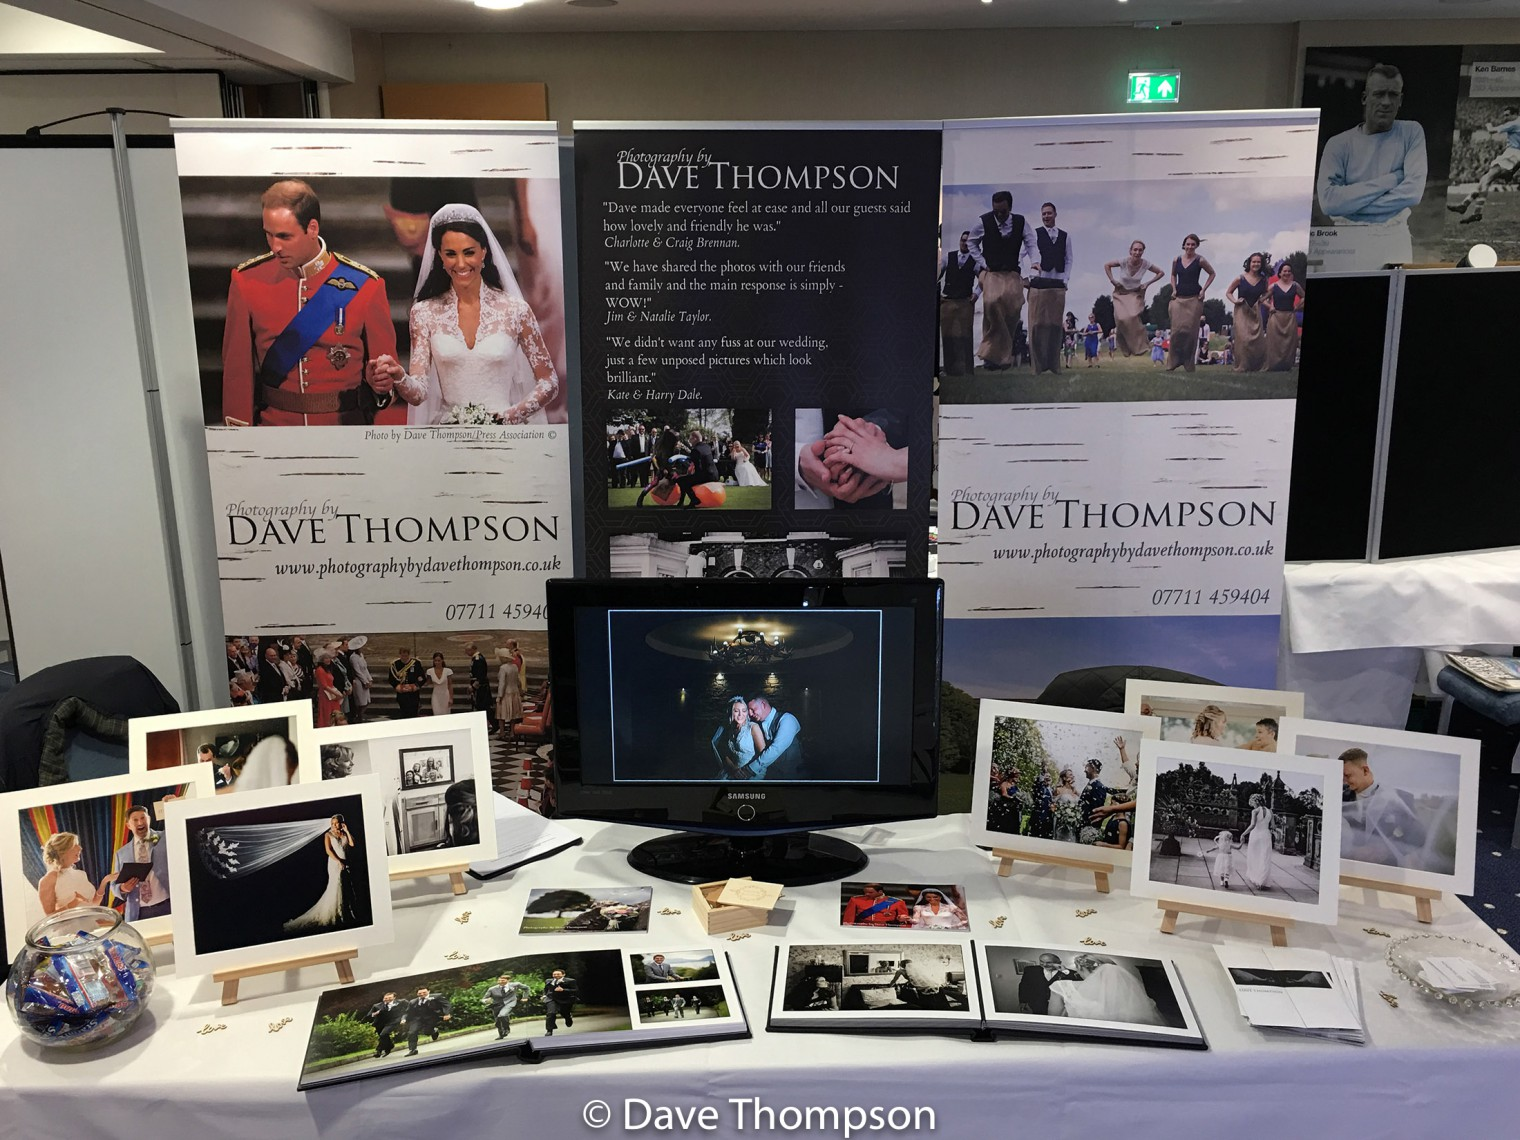 My wedding photography stand at the Etihad Stadium Wedding Fayre